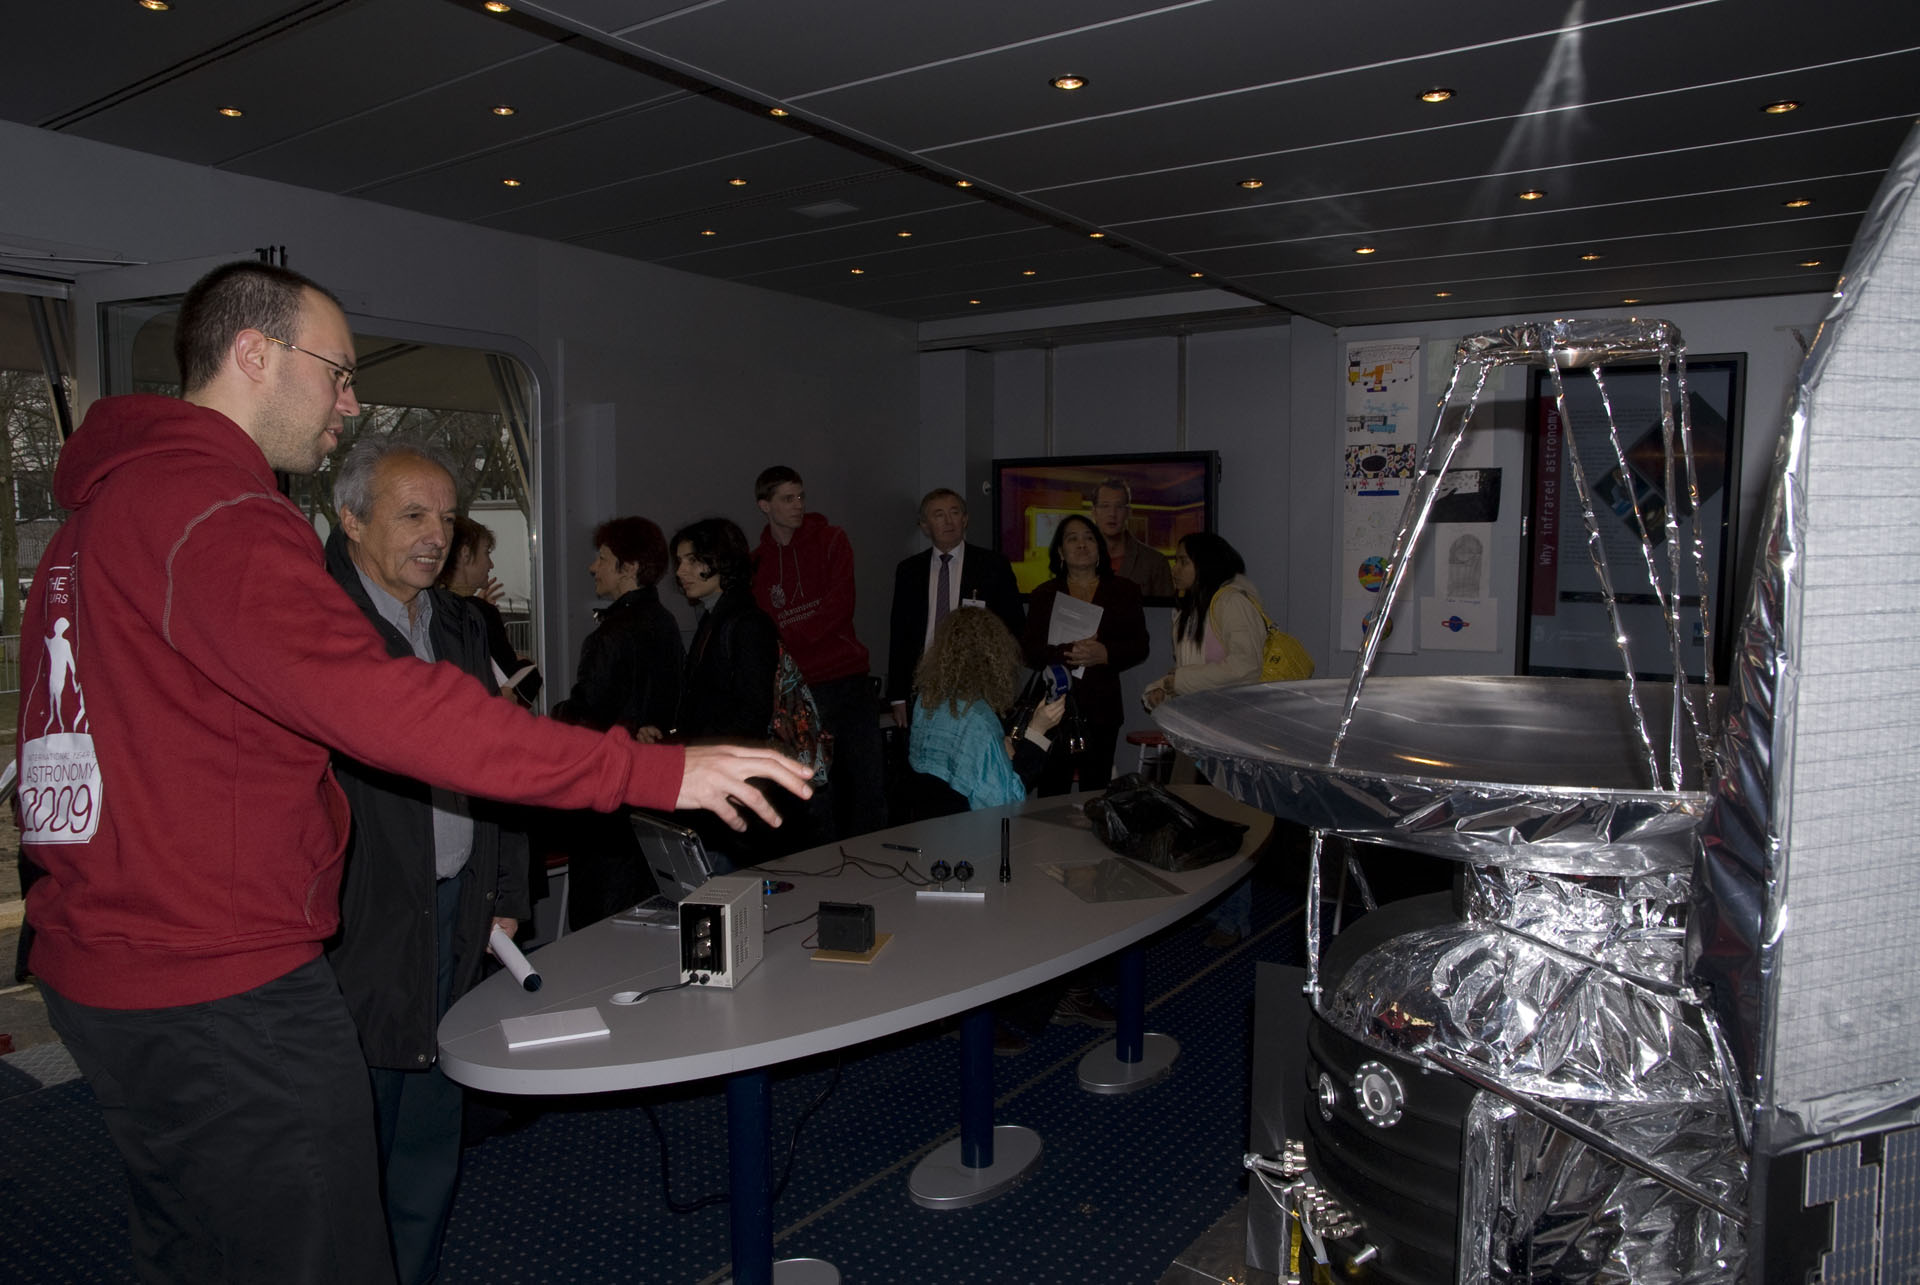 Groningen Discovery Truck - inside the truck visitors get information about Herschel and infrared light in general